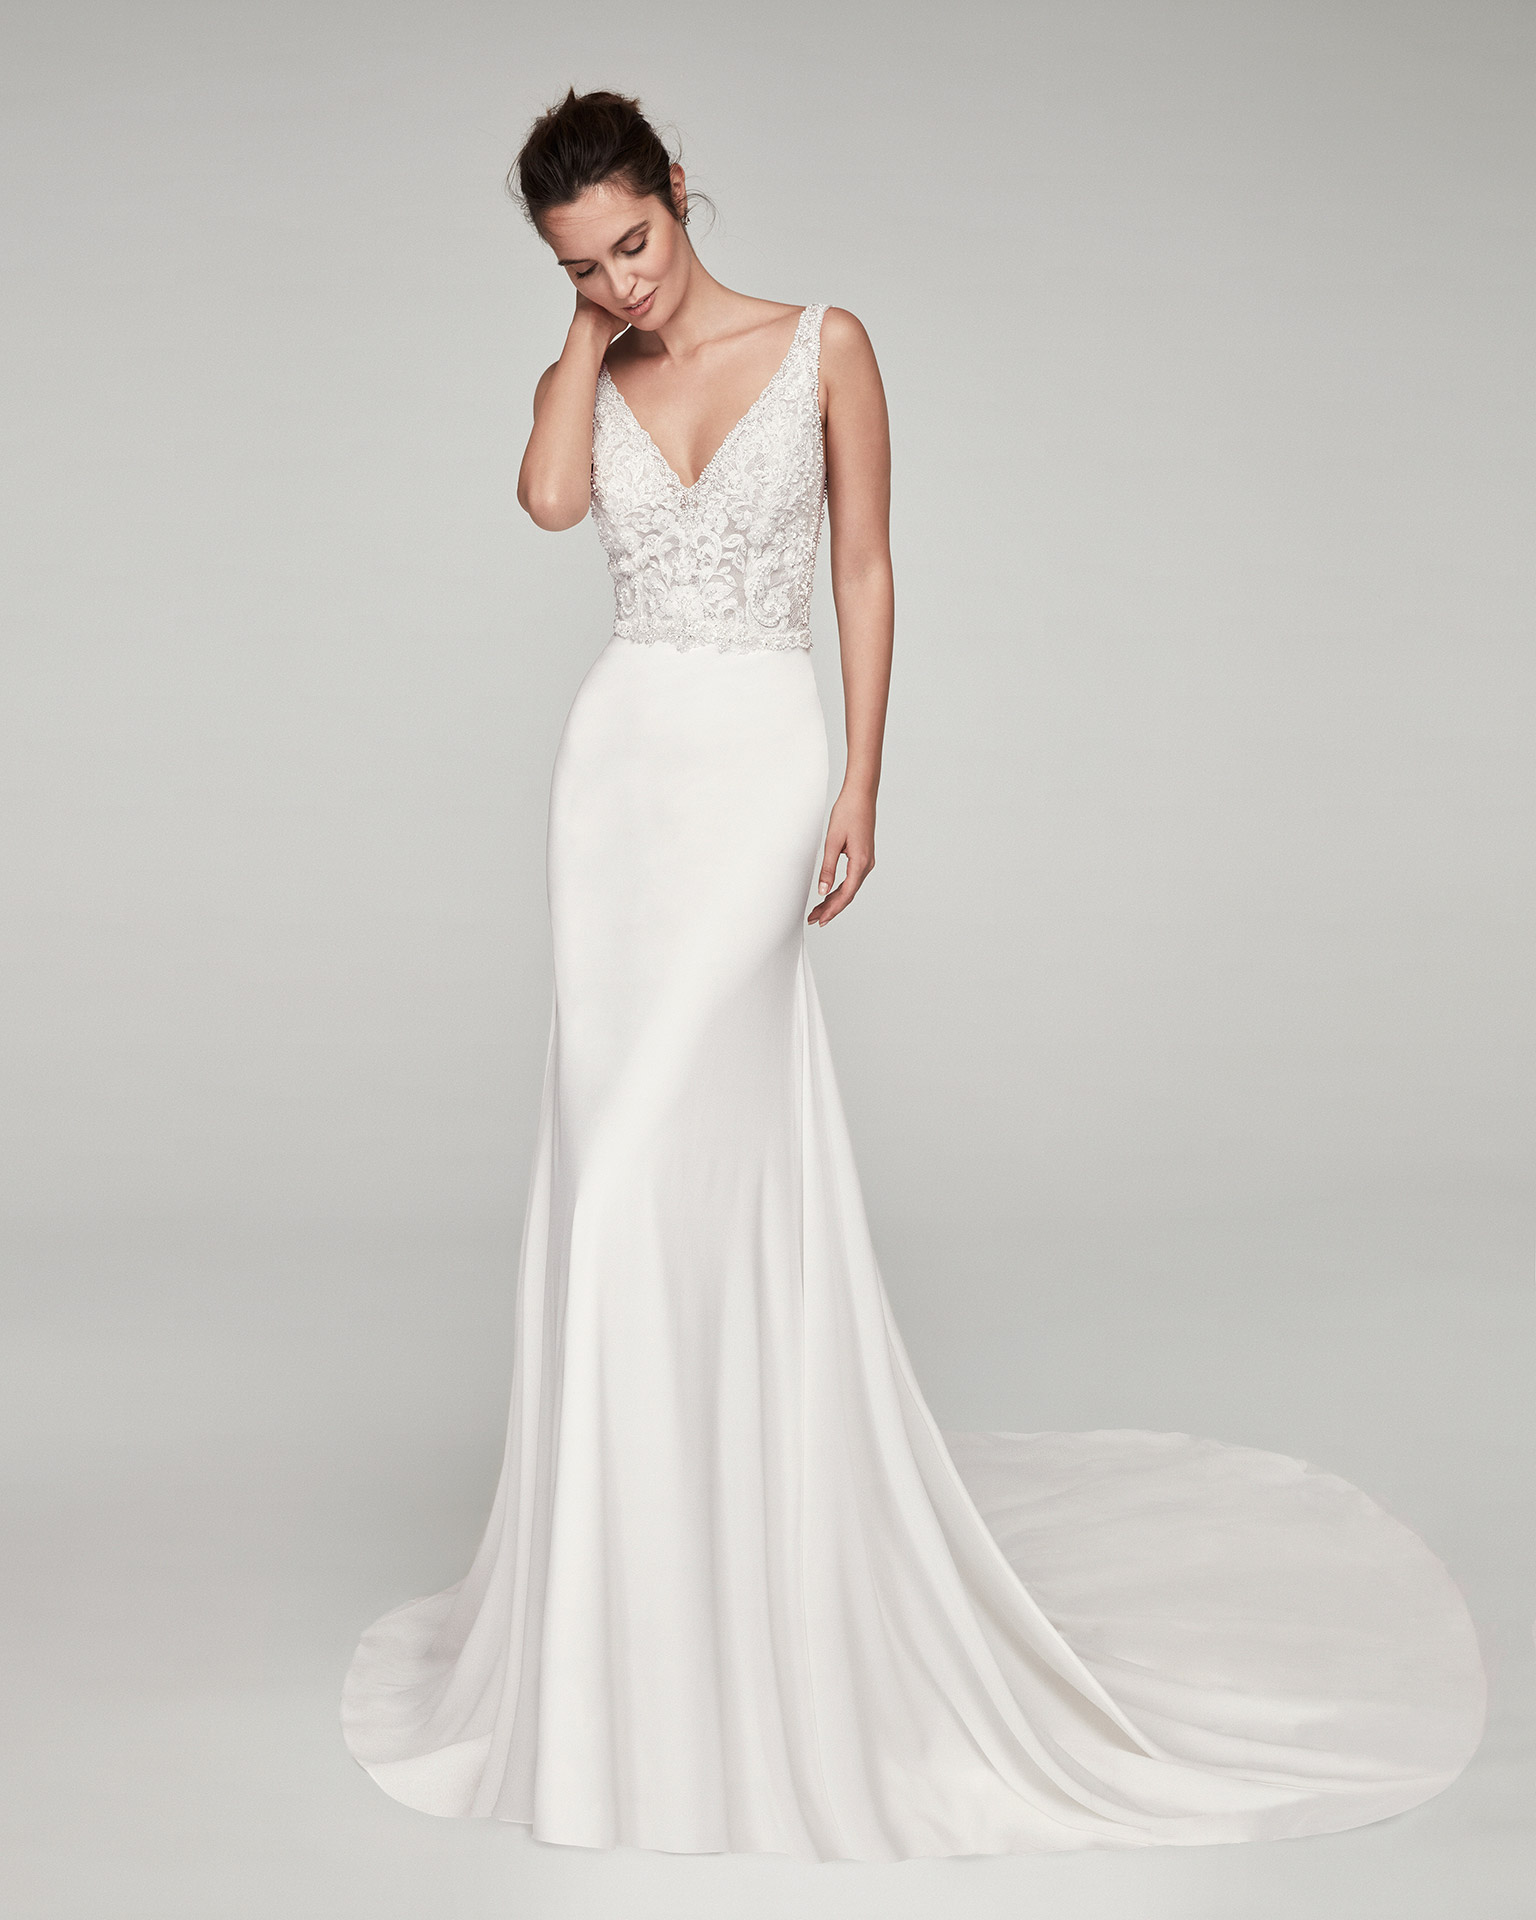 Sheath-style wedding dress in crepe Georgette and beaded lace. With V-neckline and back. Available in natural. 2020 ALMANOVIA Collection.